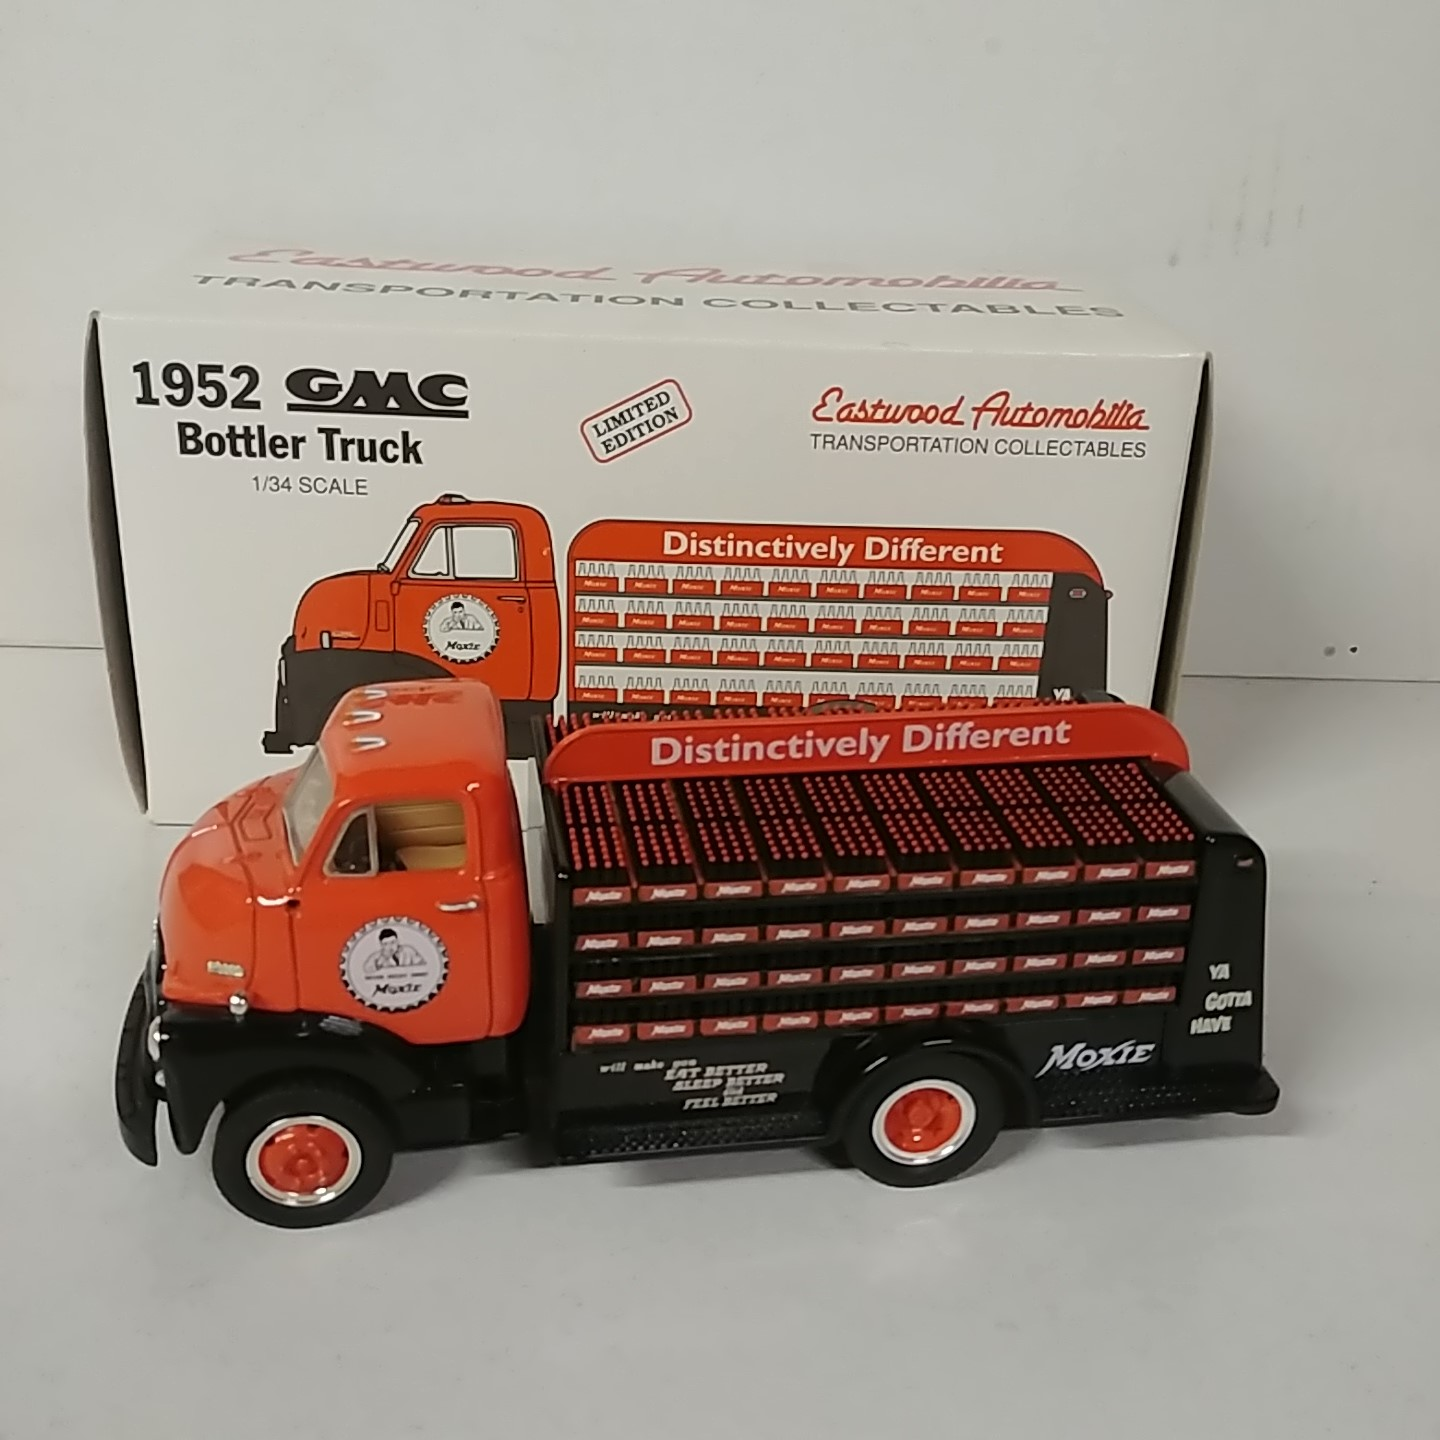 1952 GMC Moxie 1/34th Bottle Truck by Eastwood Automobilia